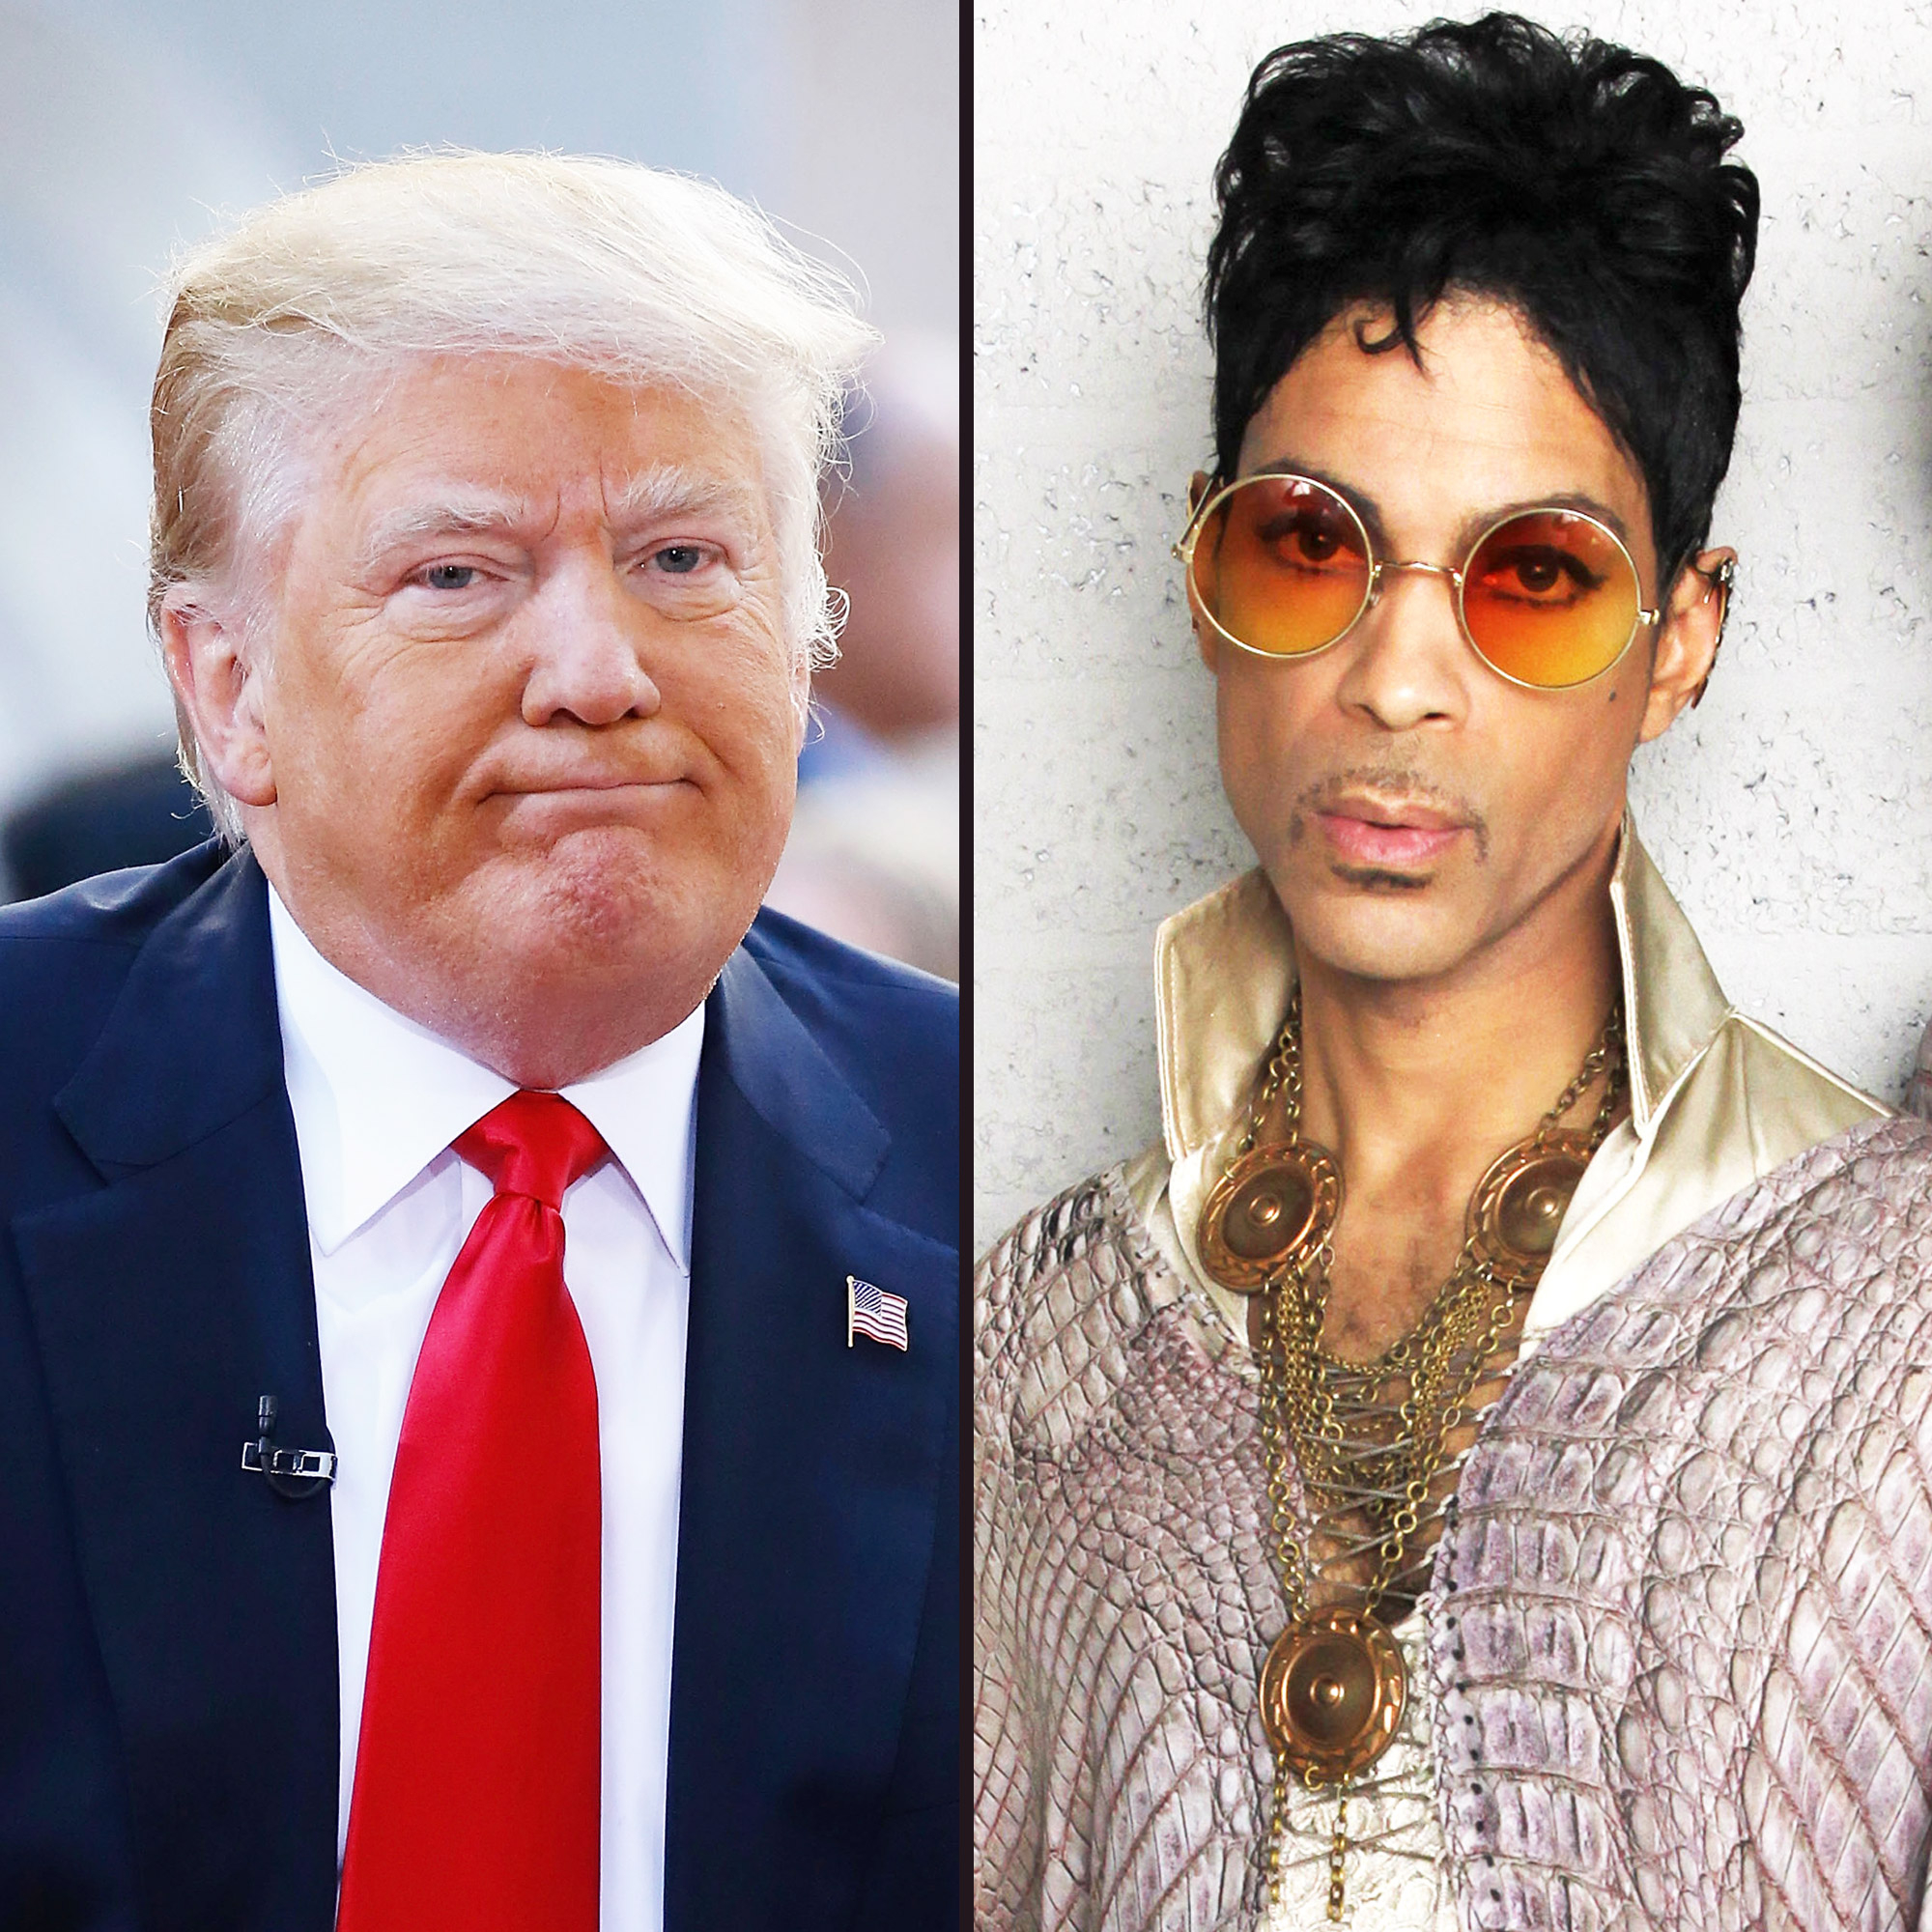 Donald Trump and Prince